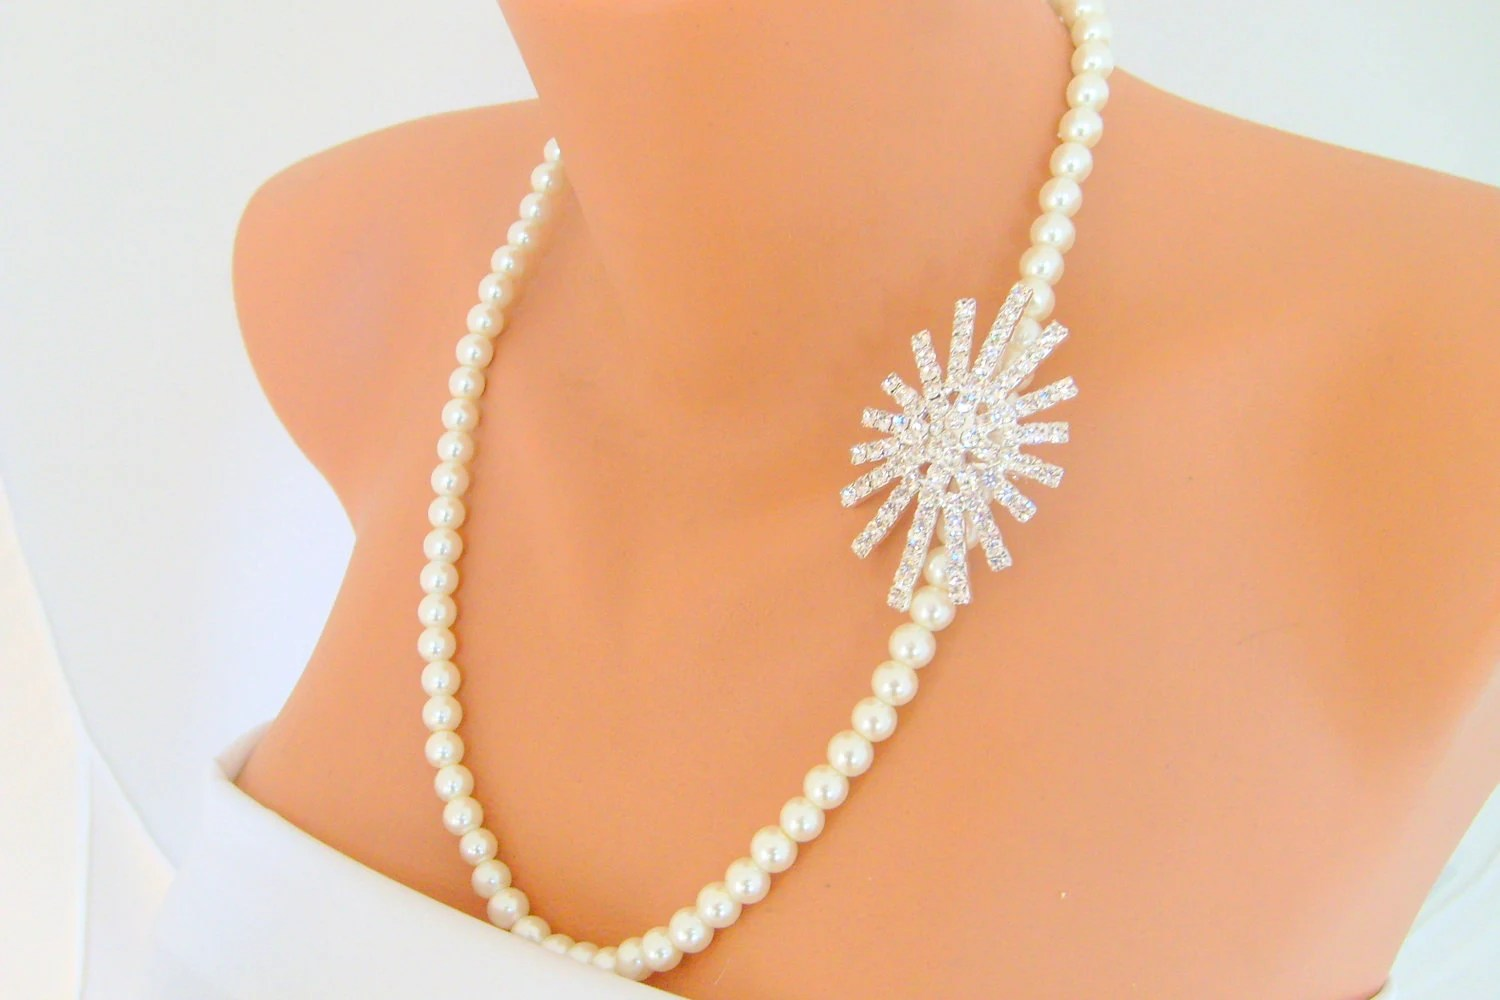 ivory pearl full strand elegant wedding necklace decorated crystal brooch wedding jewelry bridesmaid gift